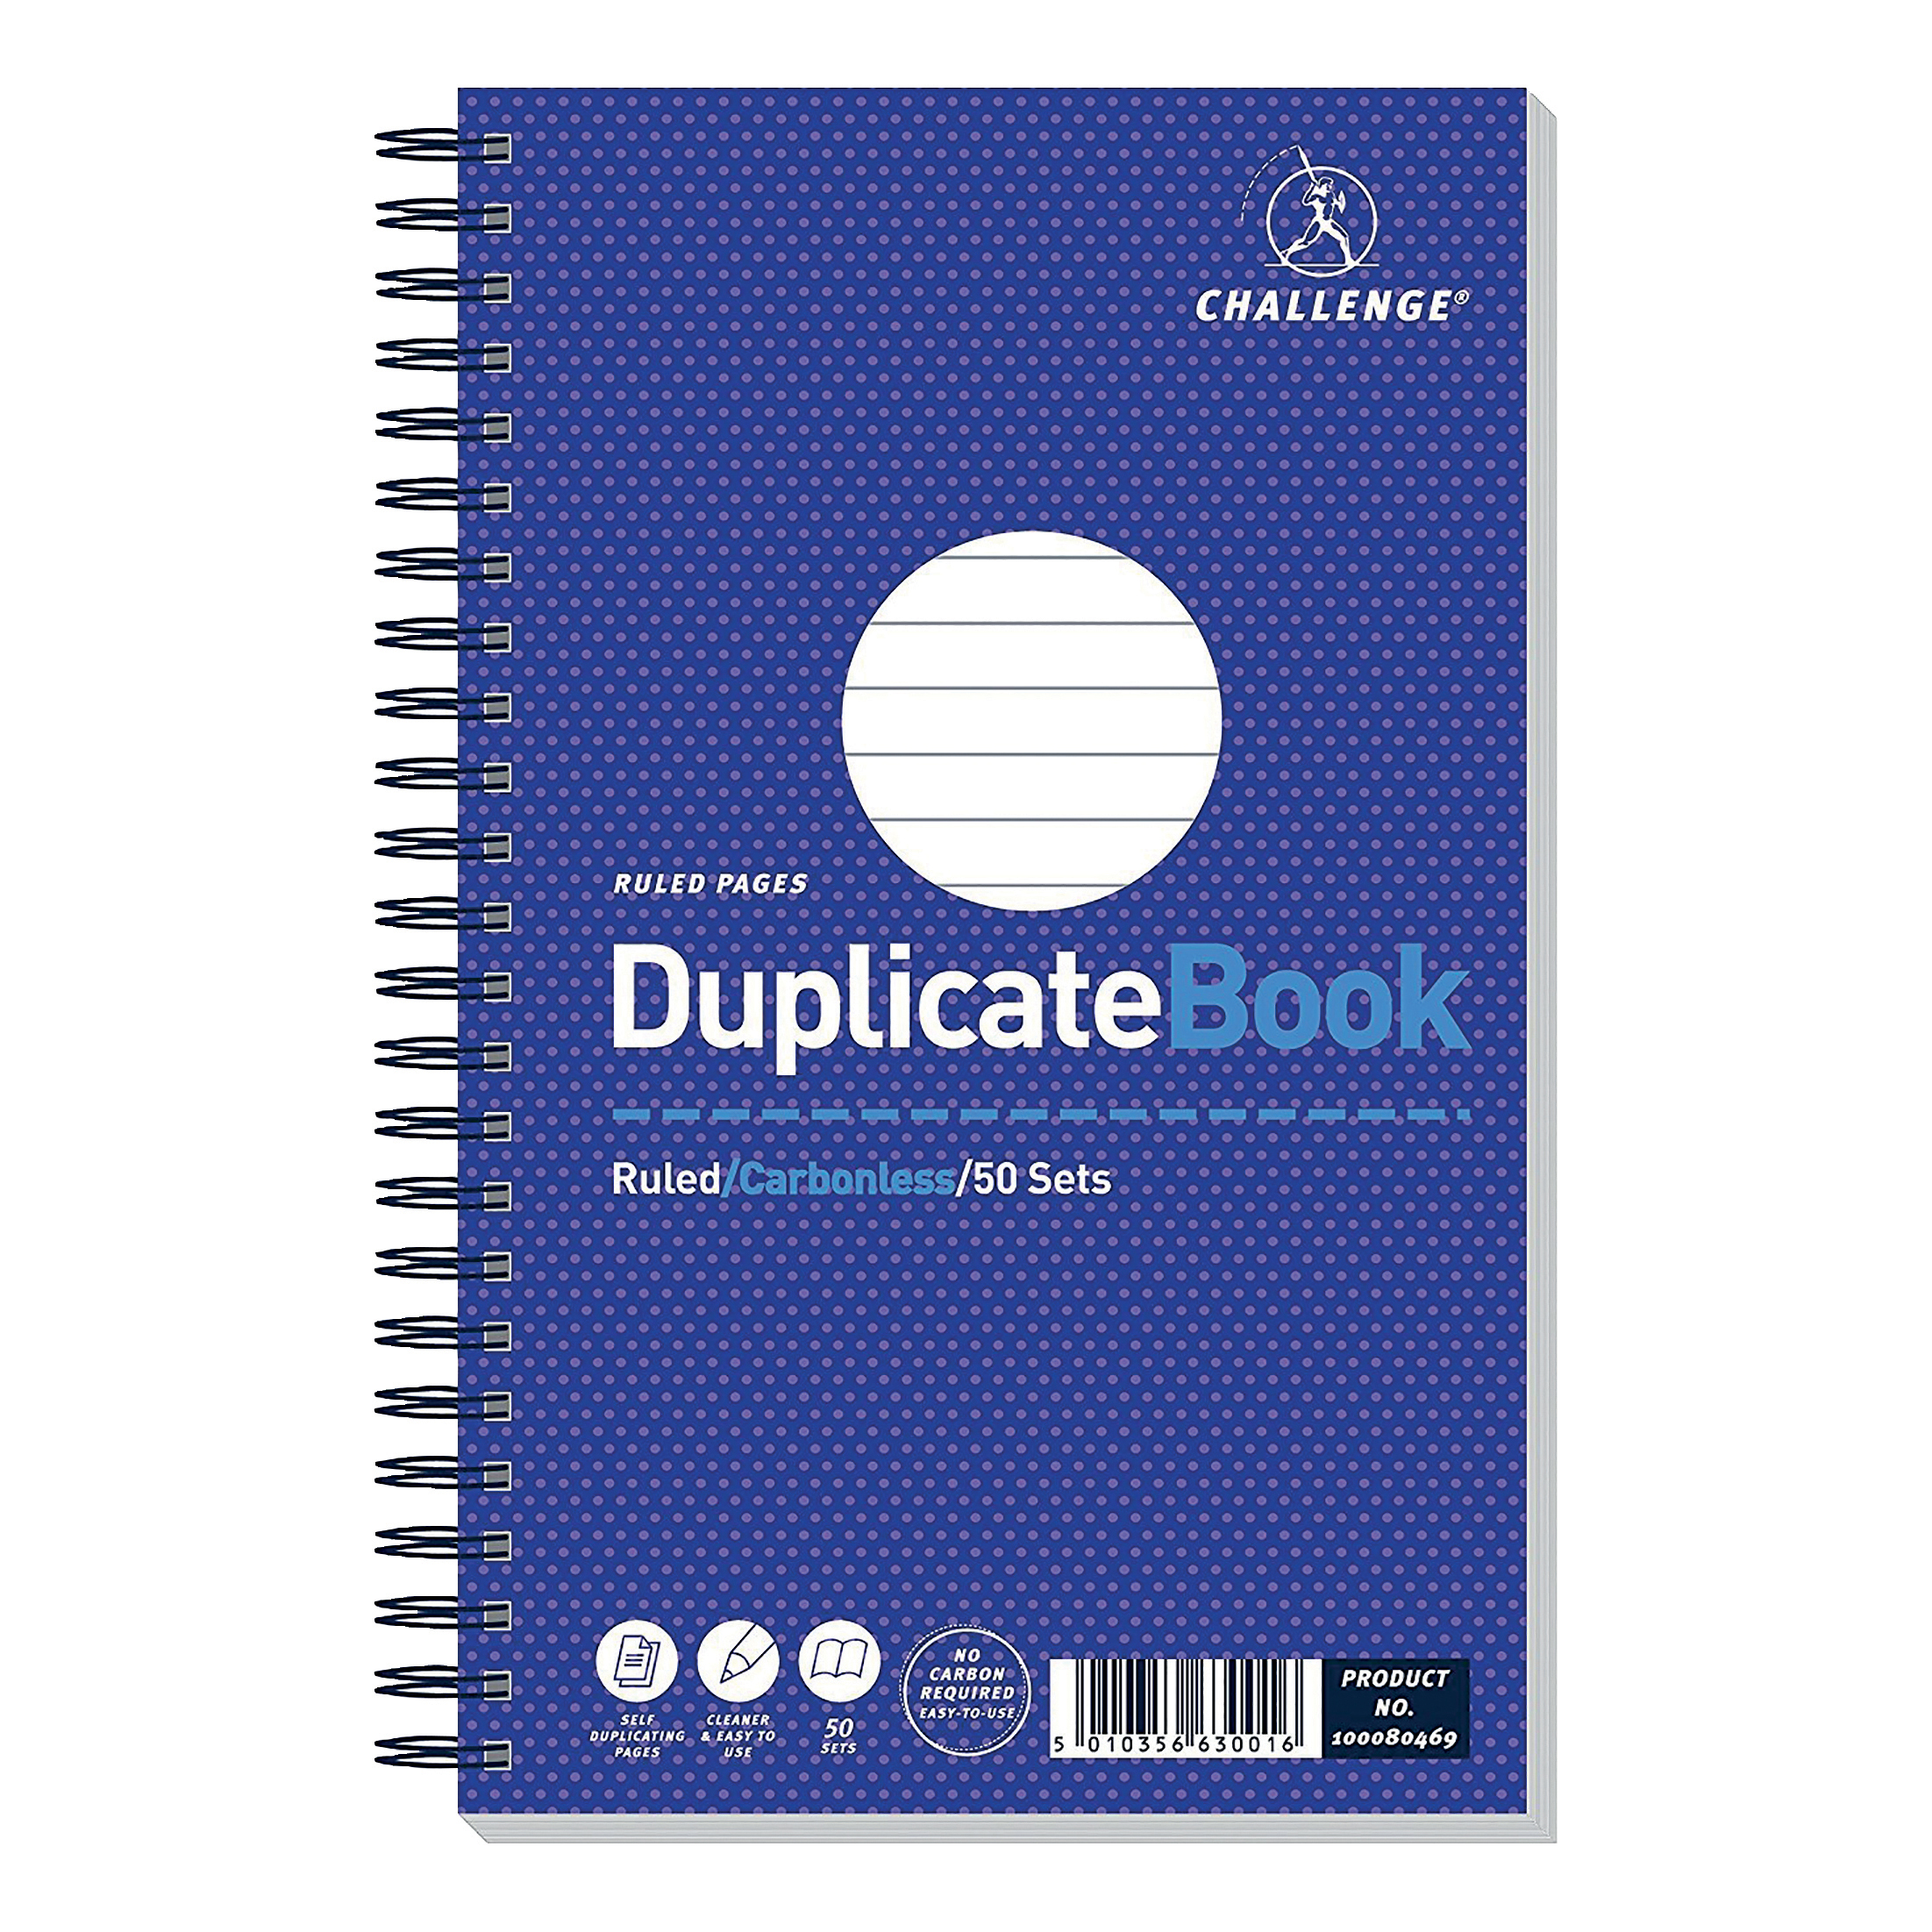 Challenge Duplicate Book Carbonless Wirebound Ruled 50 Sets 210x130mm Ref 100080469 Pack 5